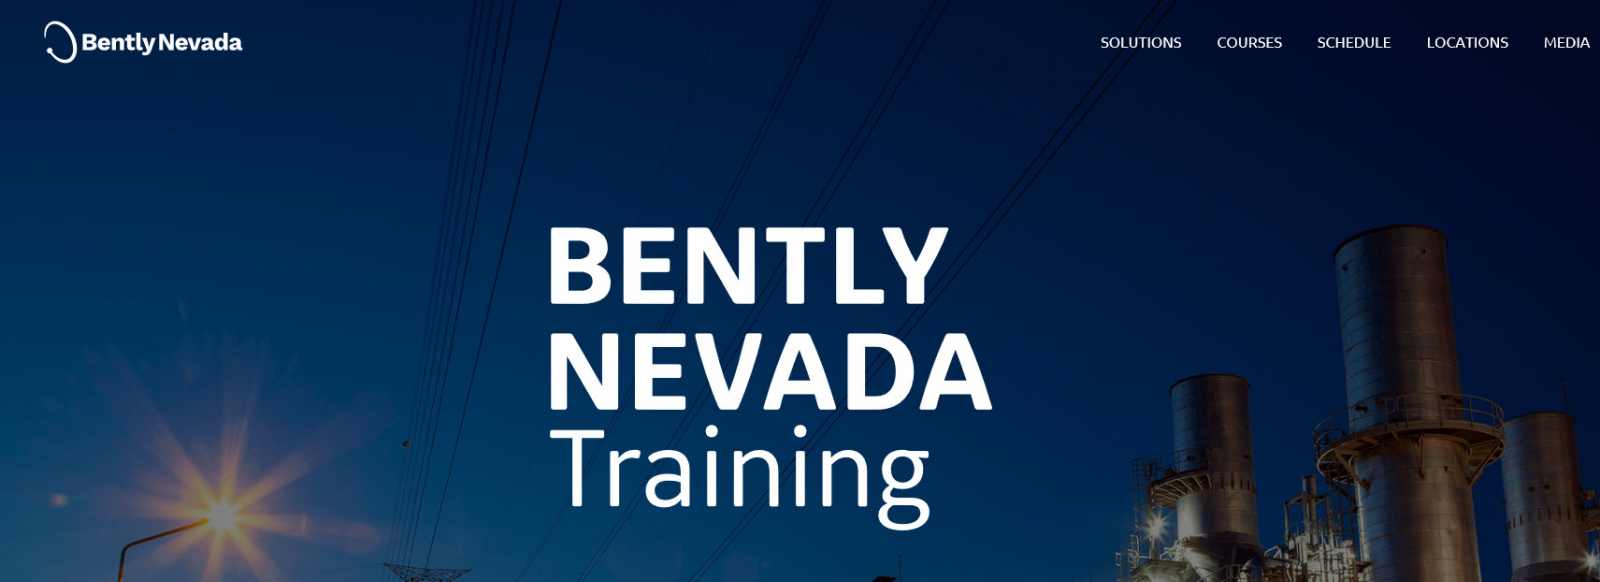 Bently Nevada Training